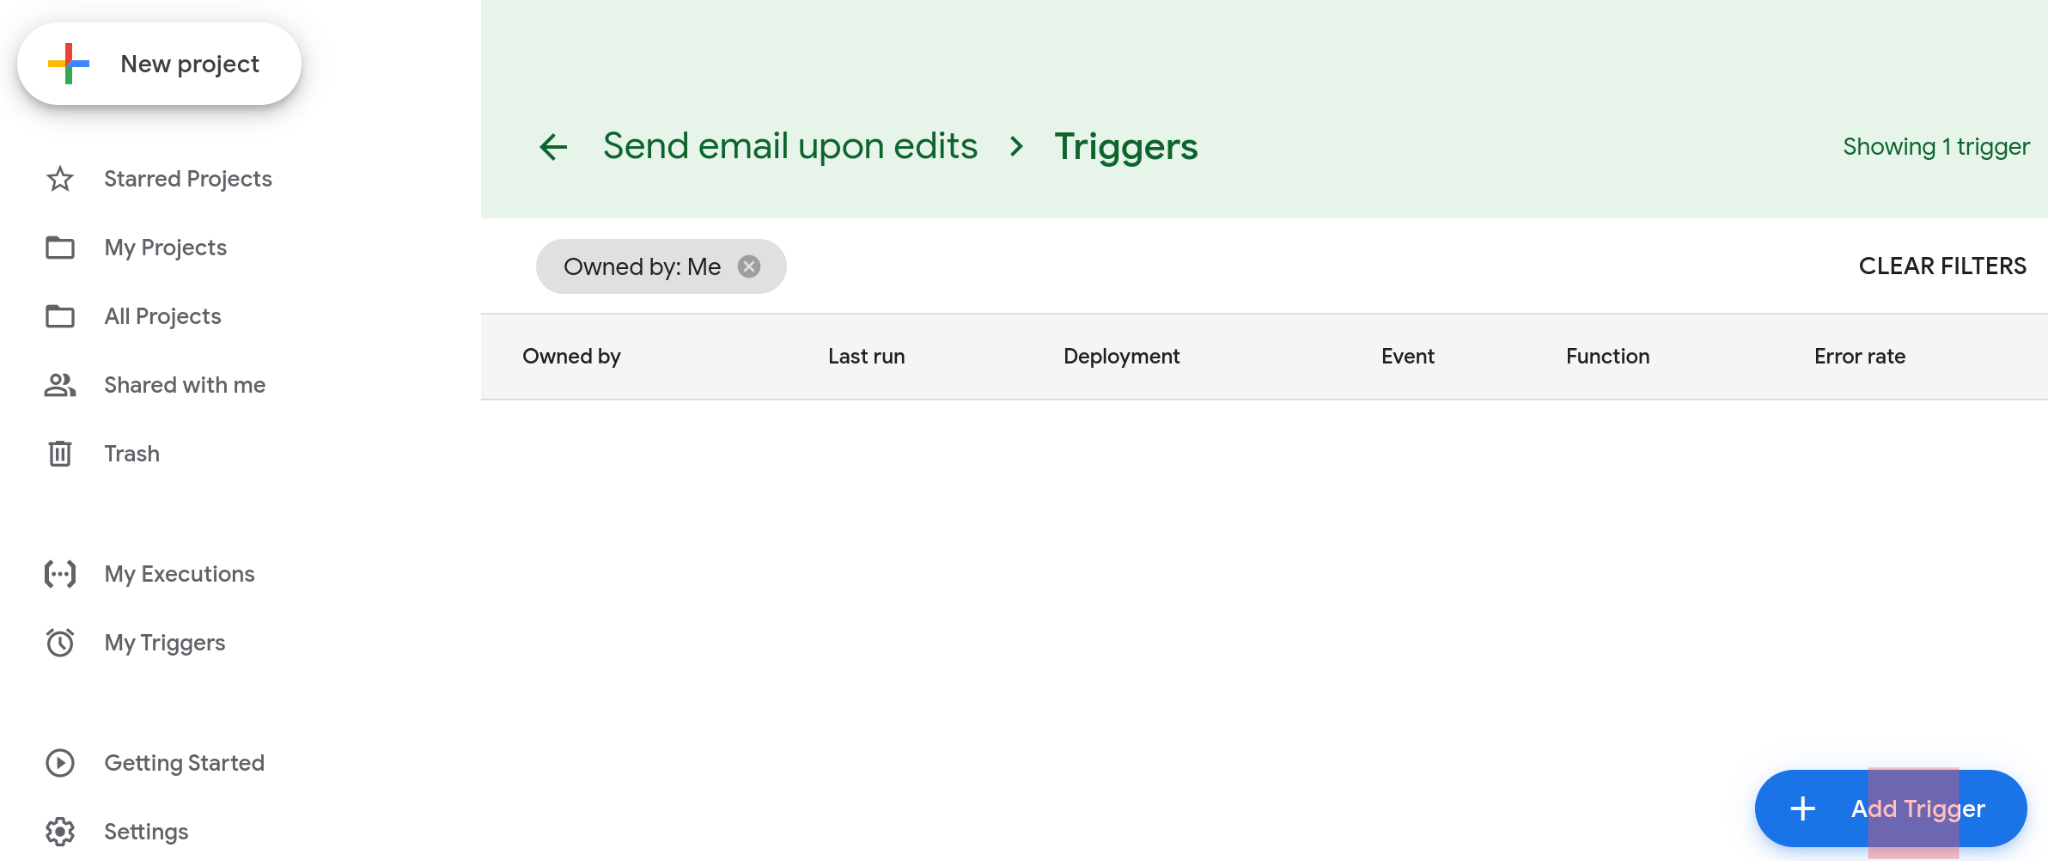 Screenshot of the triggers page. No triggers have been set up so the page is empty.